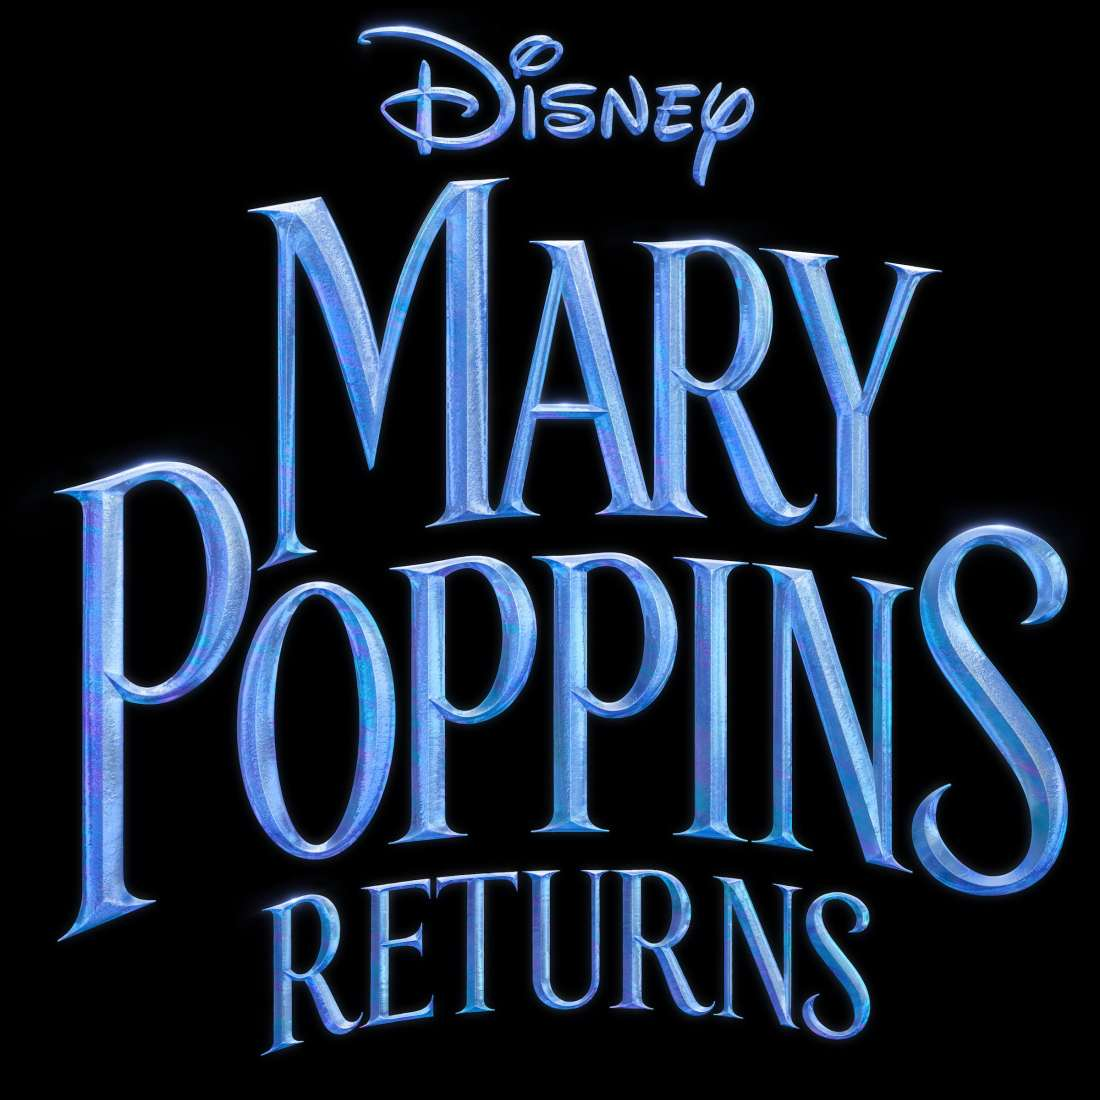 "Mary Poppins (Emily Blunt) returns to the Banks home after many years and uses her magical skills to help the now grown up Michael and Jane rediscover the joy and wonder missing in their lives in MARY POPPINS RETURNS, directed by Rob Marshall. ""Mary Poppins Returns"" will be released in U.S. theaters on December 25, 2018."